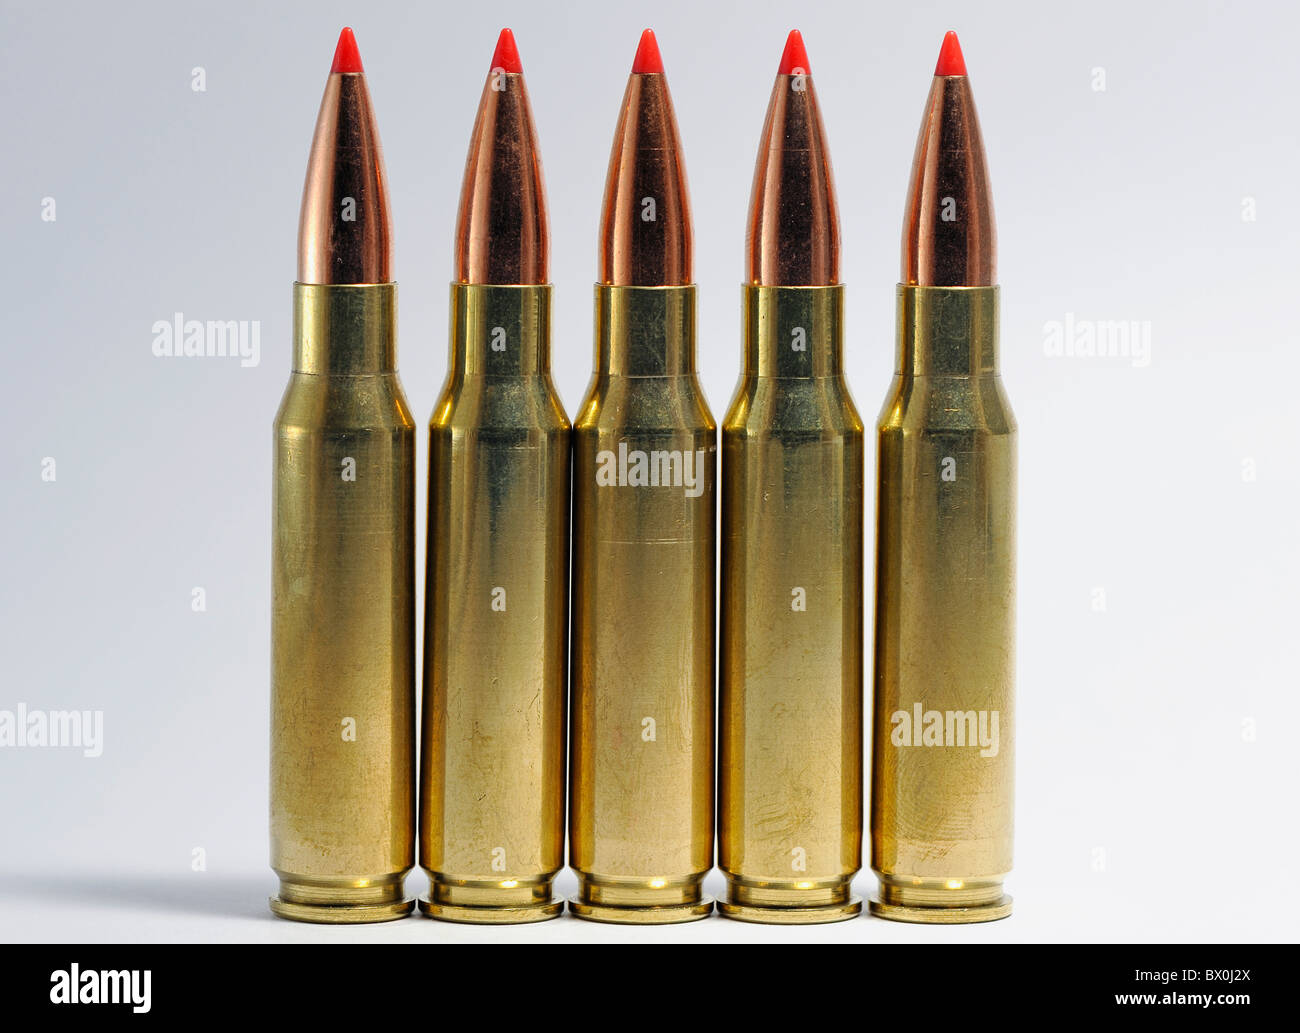 A line of five 308 Winchester rifle cartridges against a plain white background - Stock Image